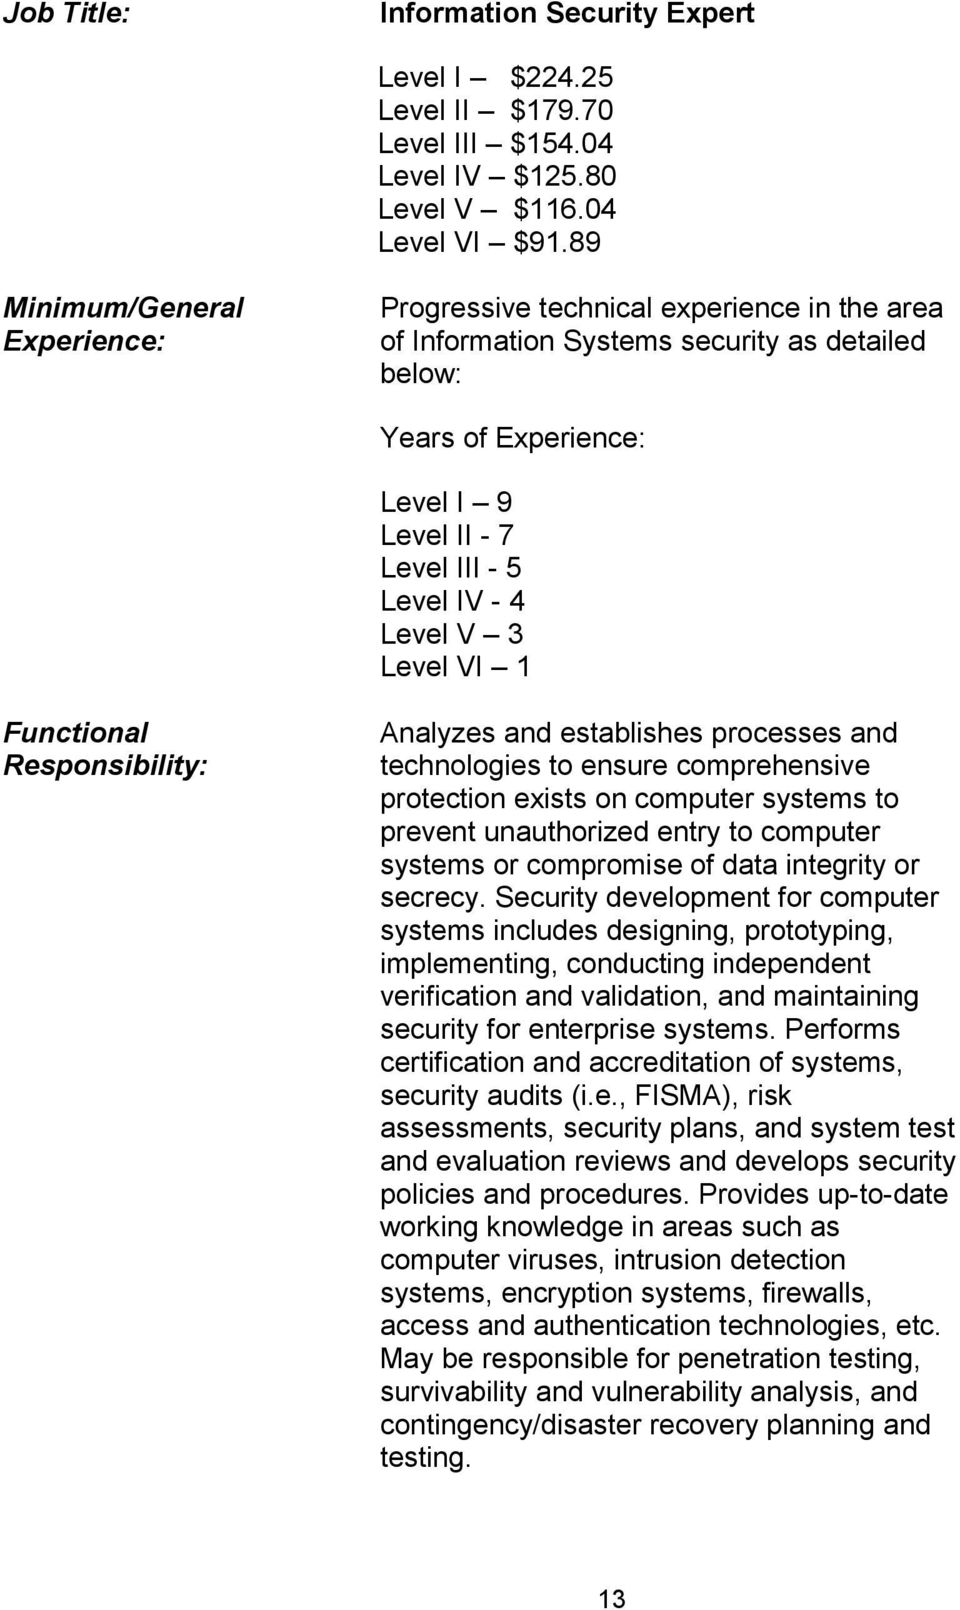 establishes processes and technologies to ensure comprehensive protection exists on computer systems to prevent unauthorized entry to computer systems or compromise of data integrity or secrecy.